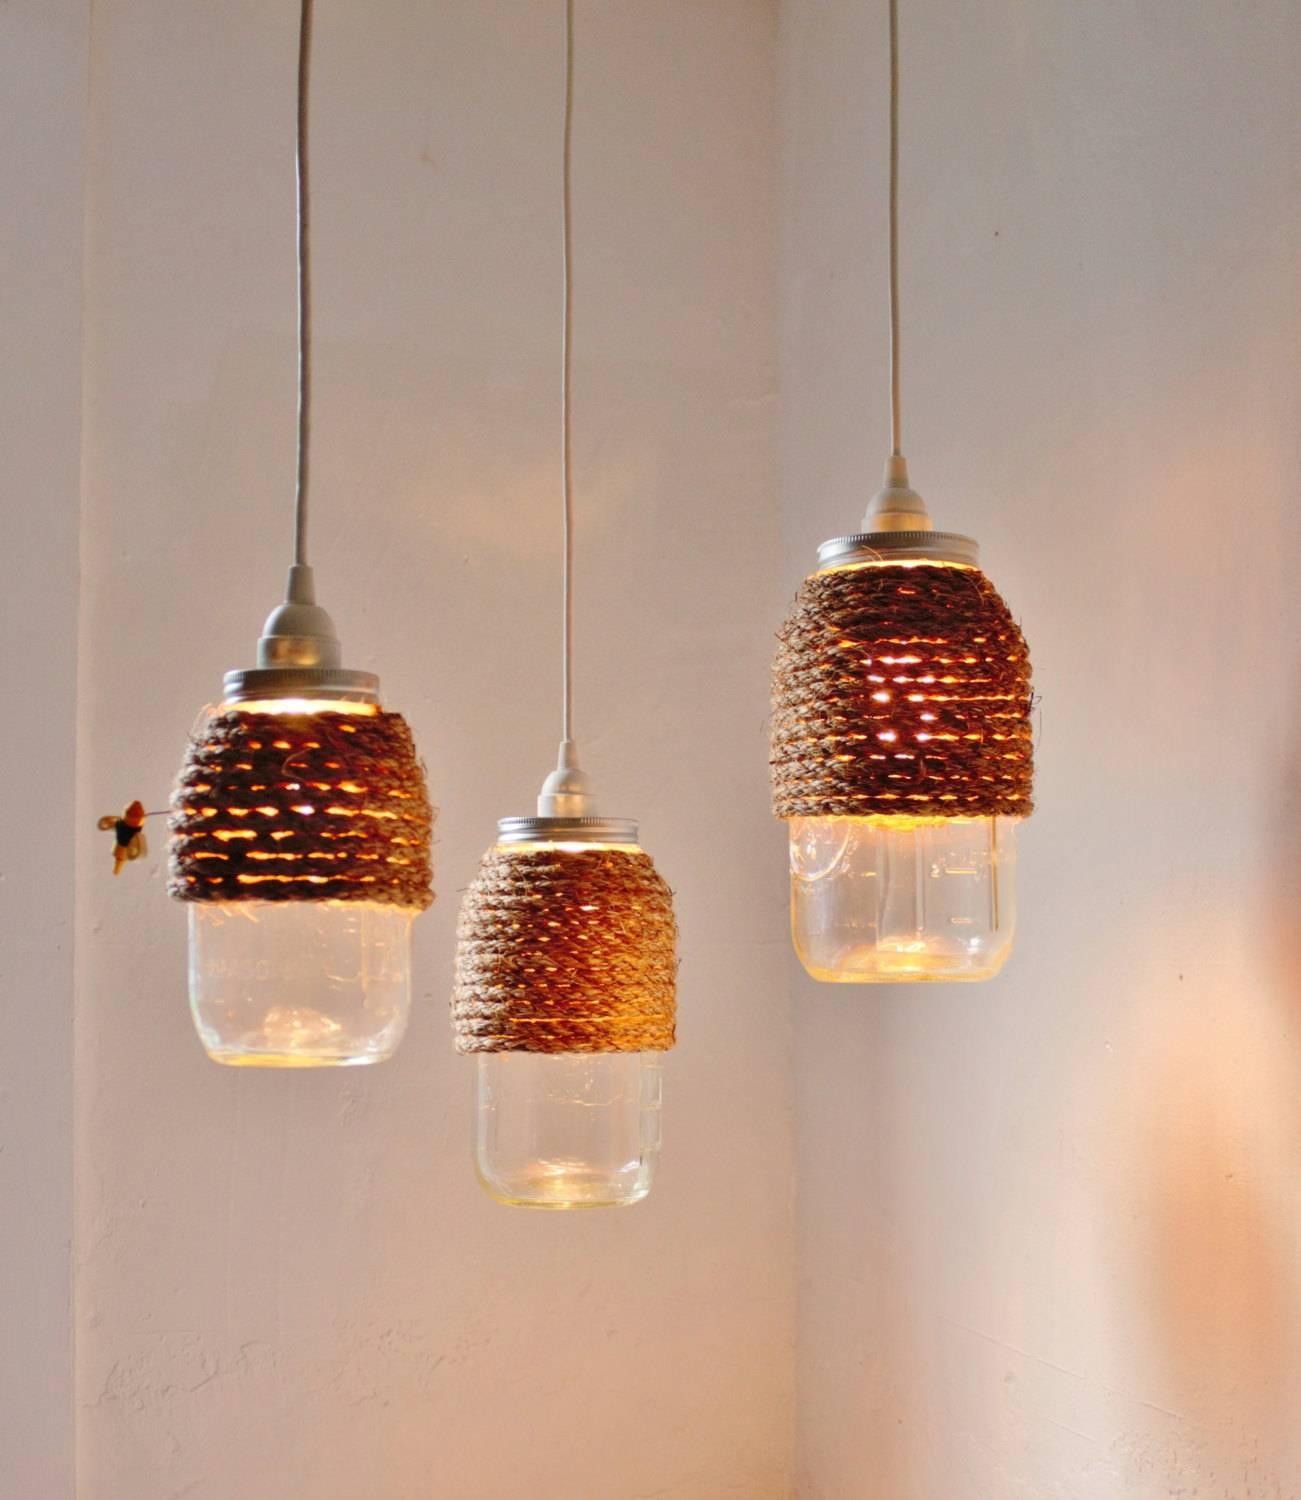 The Hive Mason Jar Pendant Lights Set Of 3 Hanging Lighting with Mason Jar Pendant Lights For Sale (Image 13 of 15)